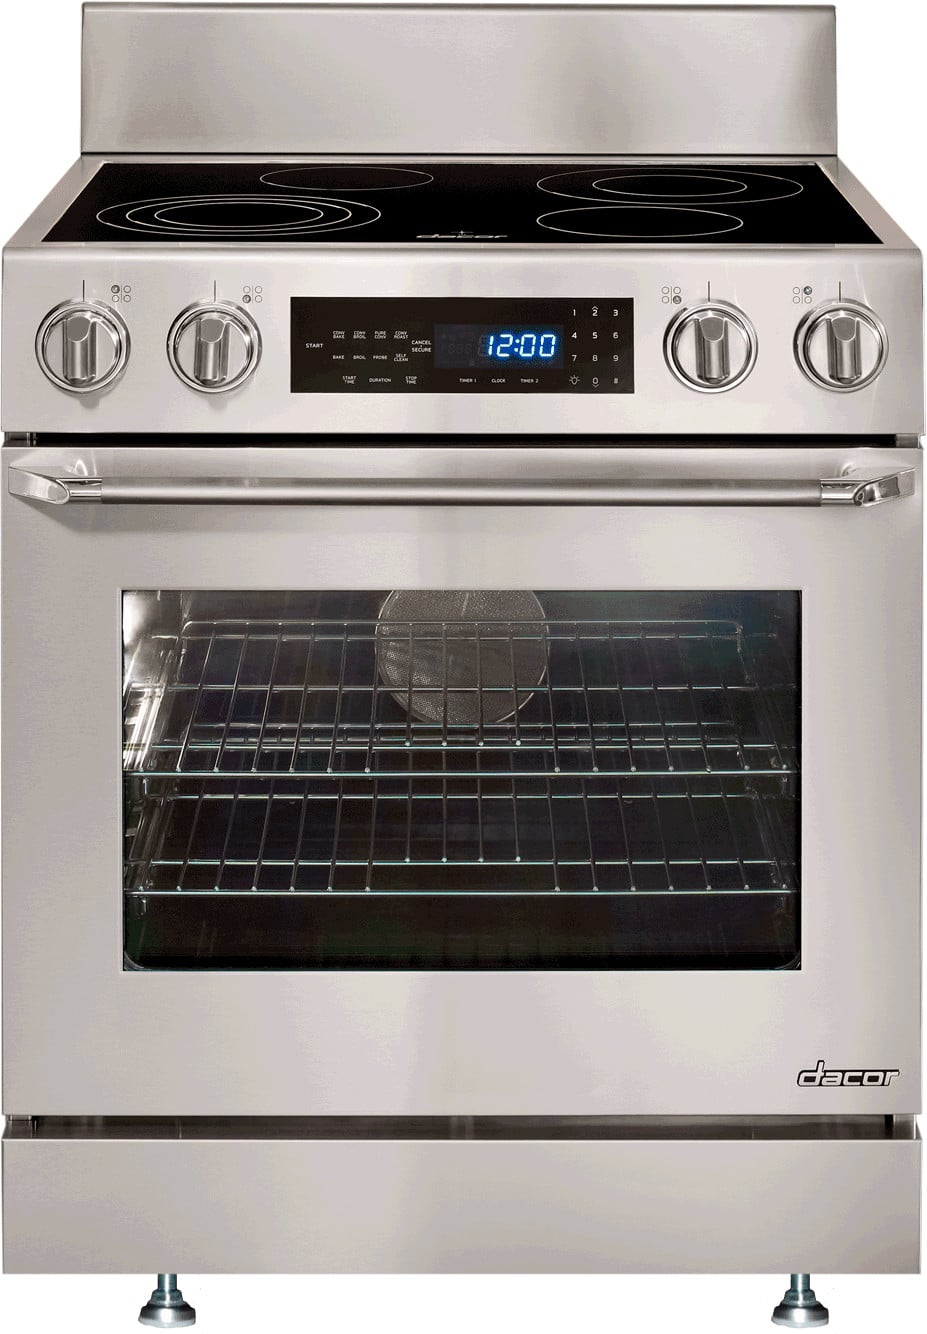 Dacor Countertop Stove : Dacor DR30ES 30 Inch Freestanding Electric Range with 4.8 cu. ft ...